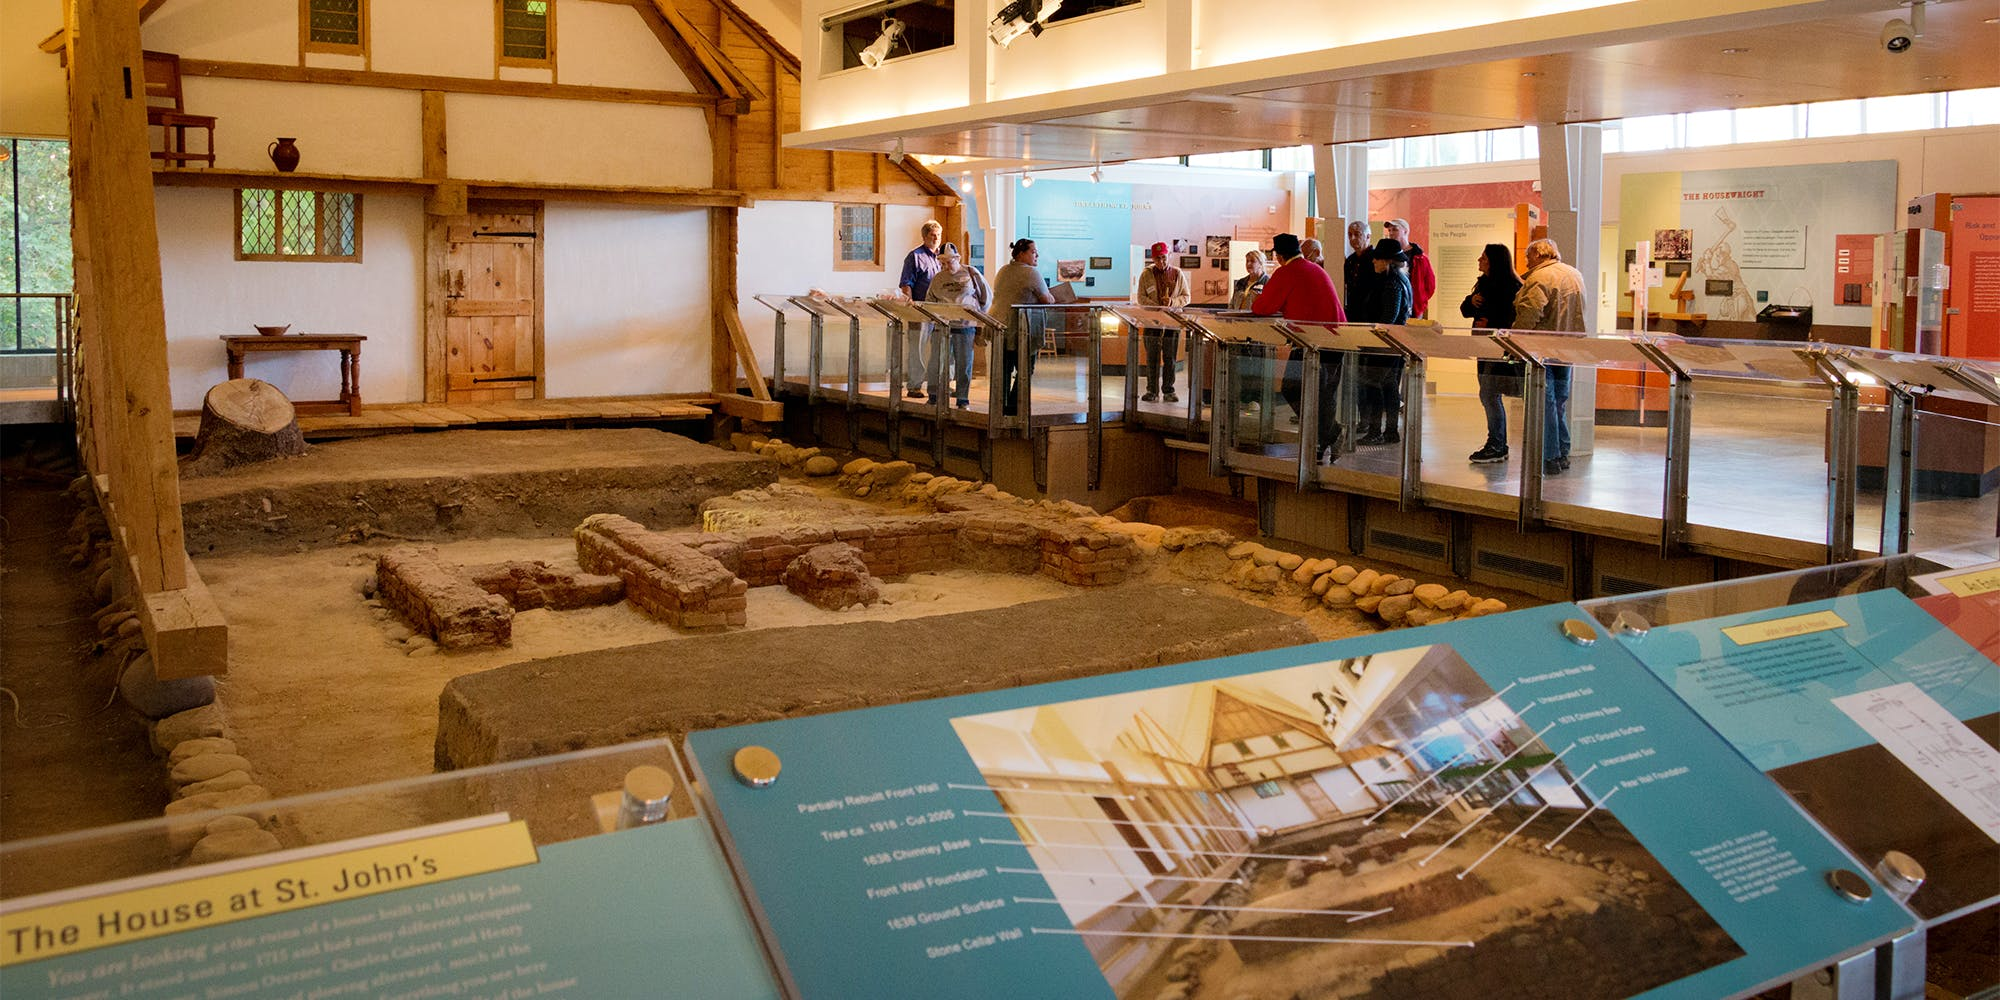 St. John's Site Museum is a premiere museum of archaeology, and rare opportunity to see a partially excavated and preserved site.